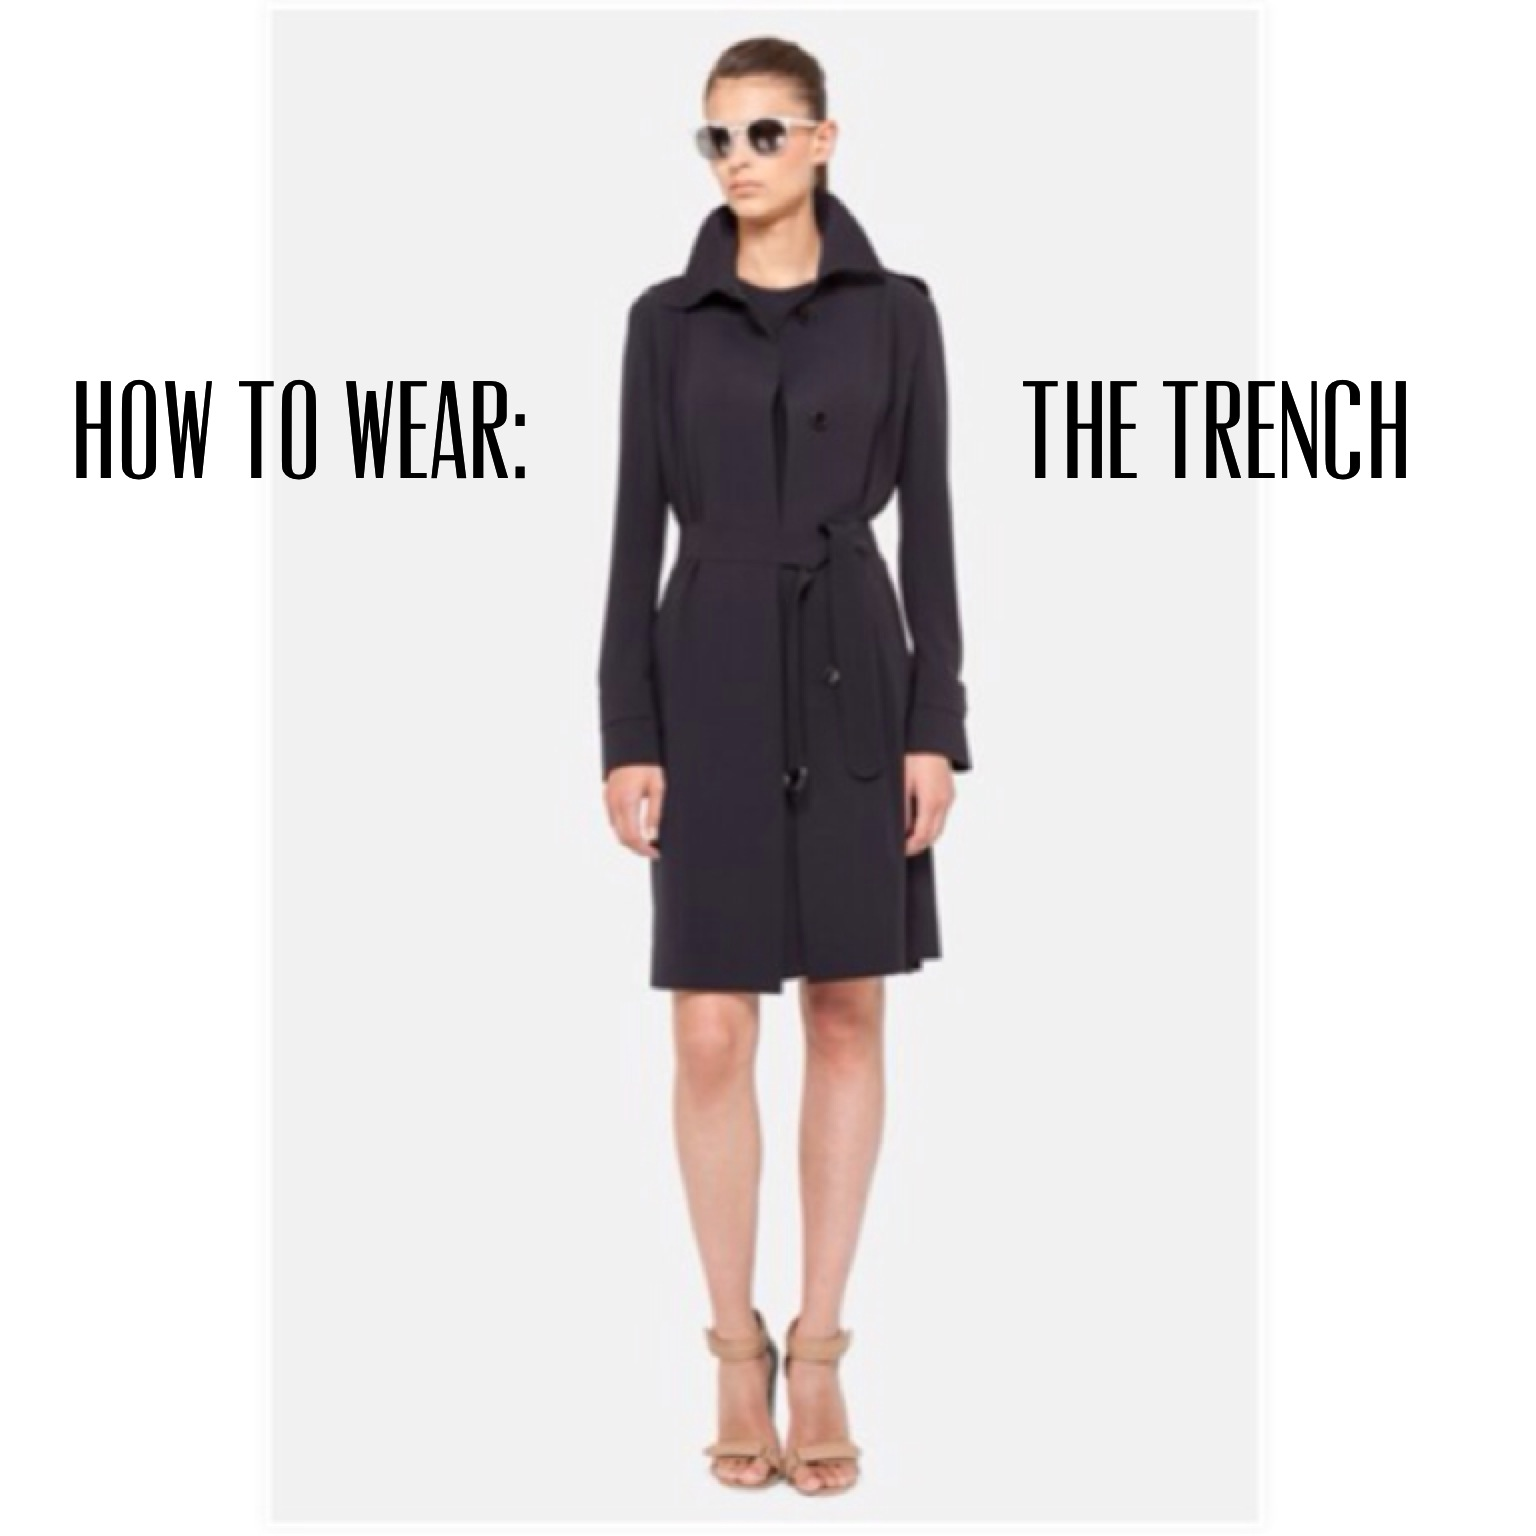 How To Wear: The Trench